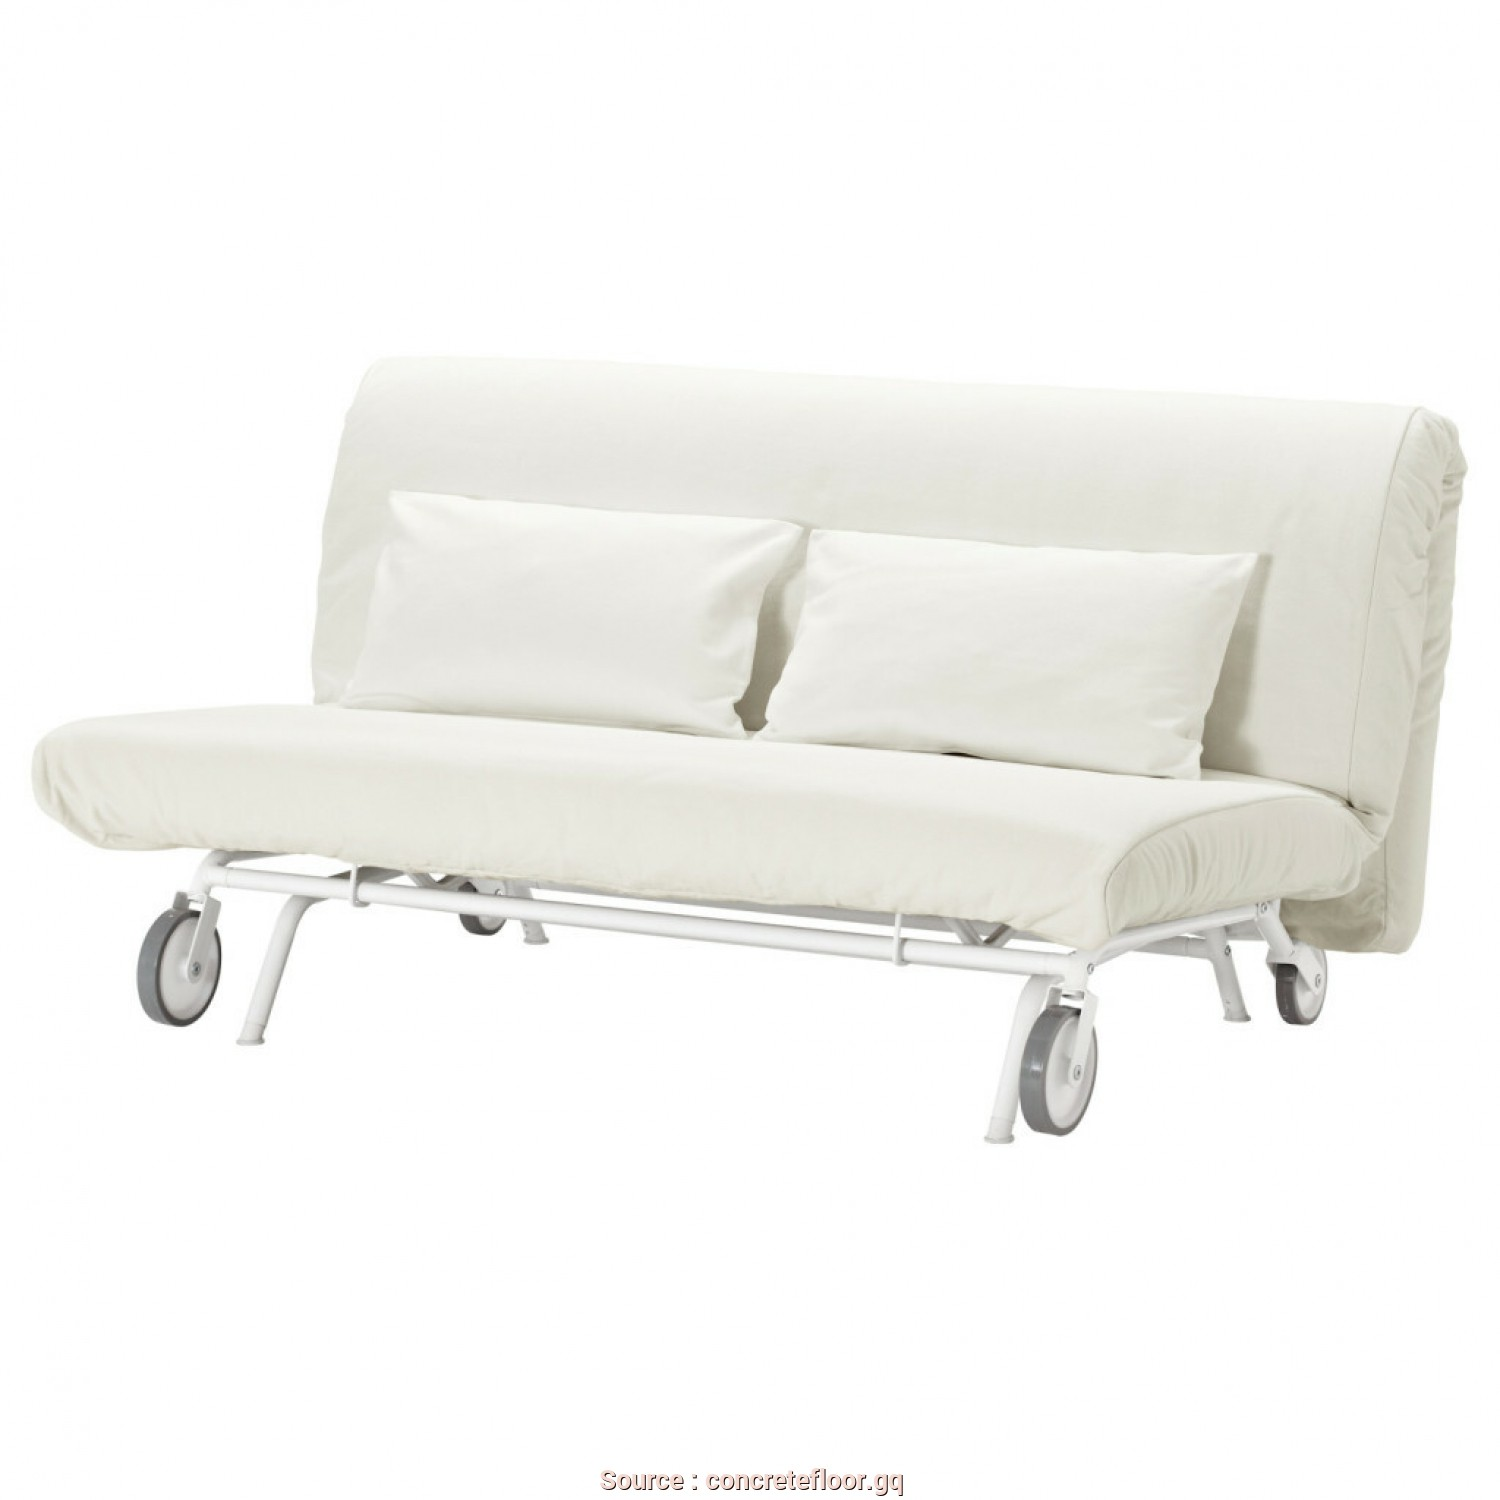 Ikea Canape Convertible Asarum, Loveable Ikea Convertible 2 Places, Concretefloor.Gq